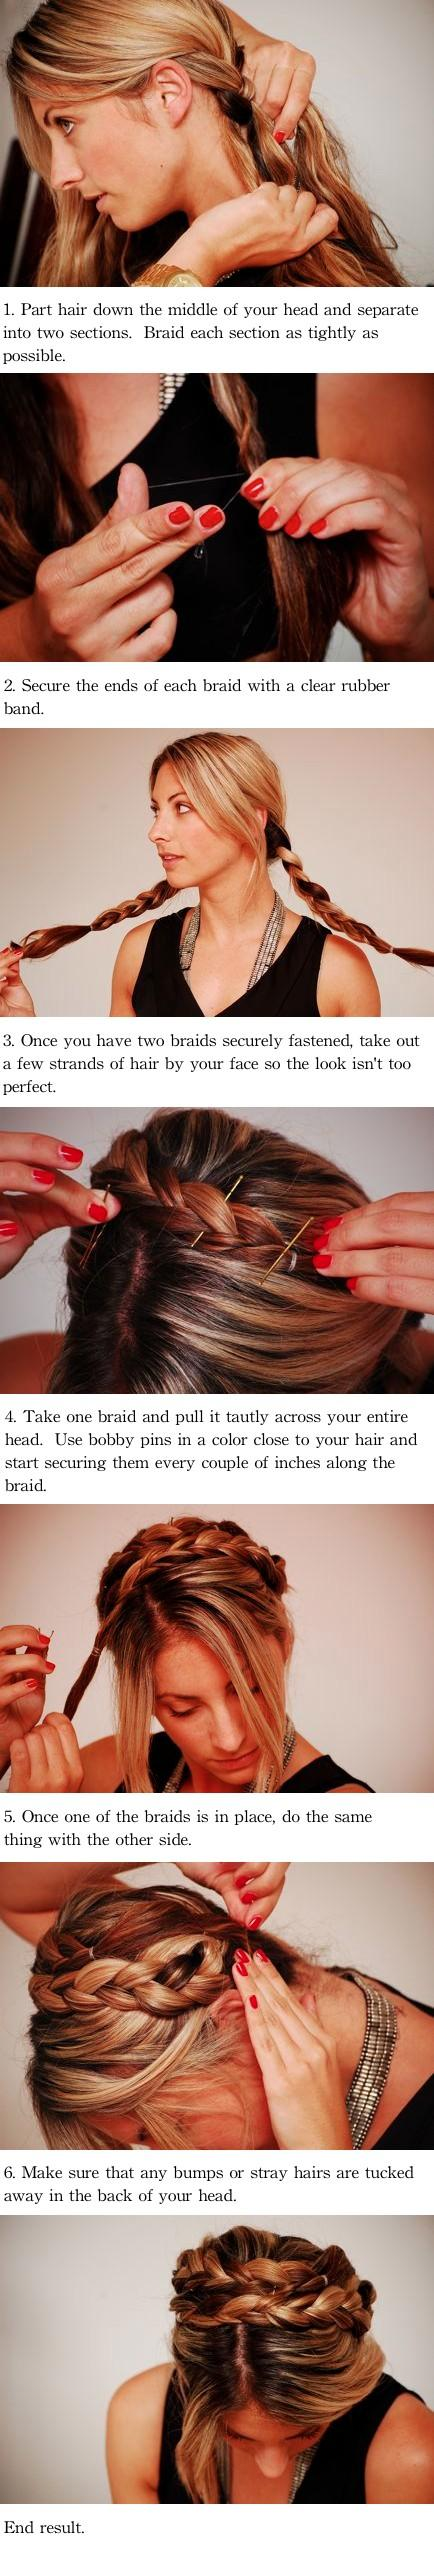 Braided Updo Tutorial. My hair has gotten so long, I need to try this.